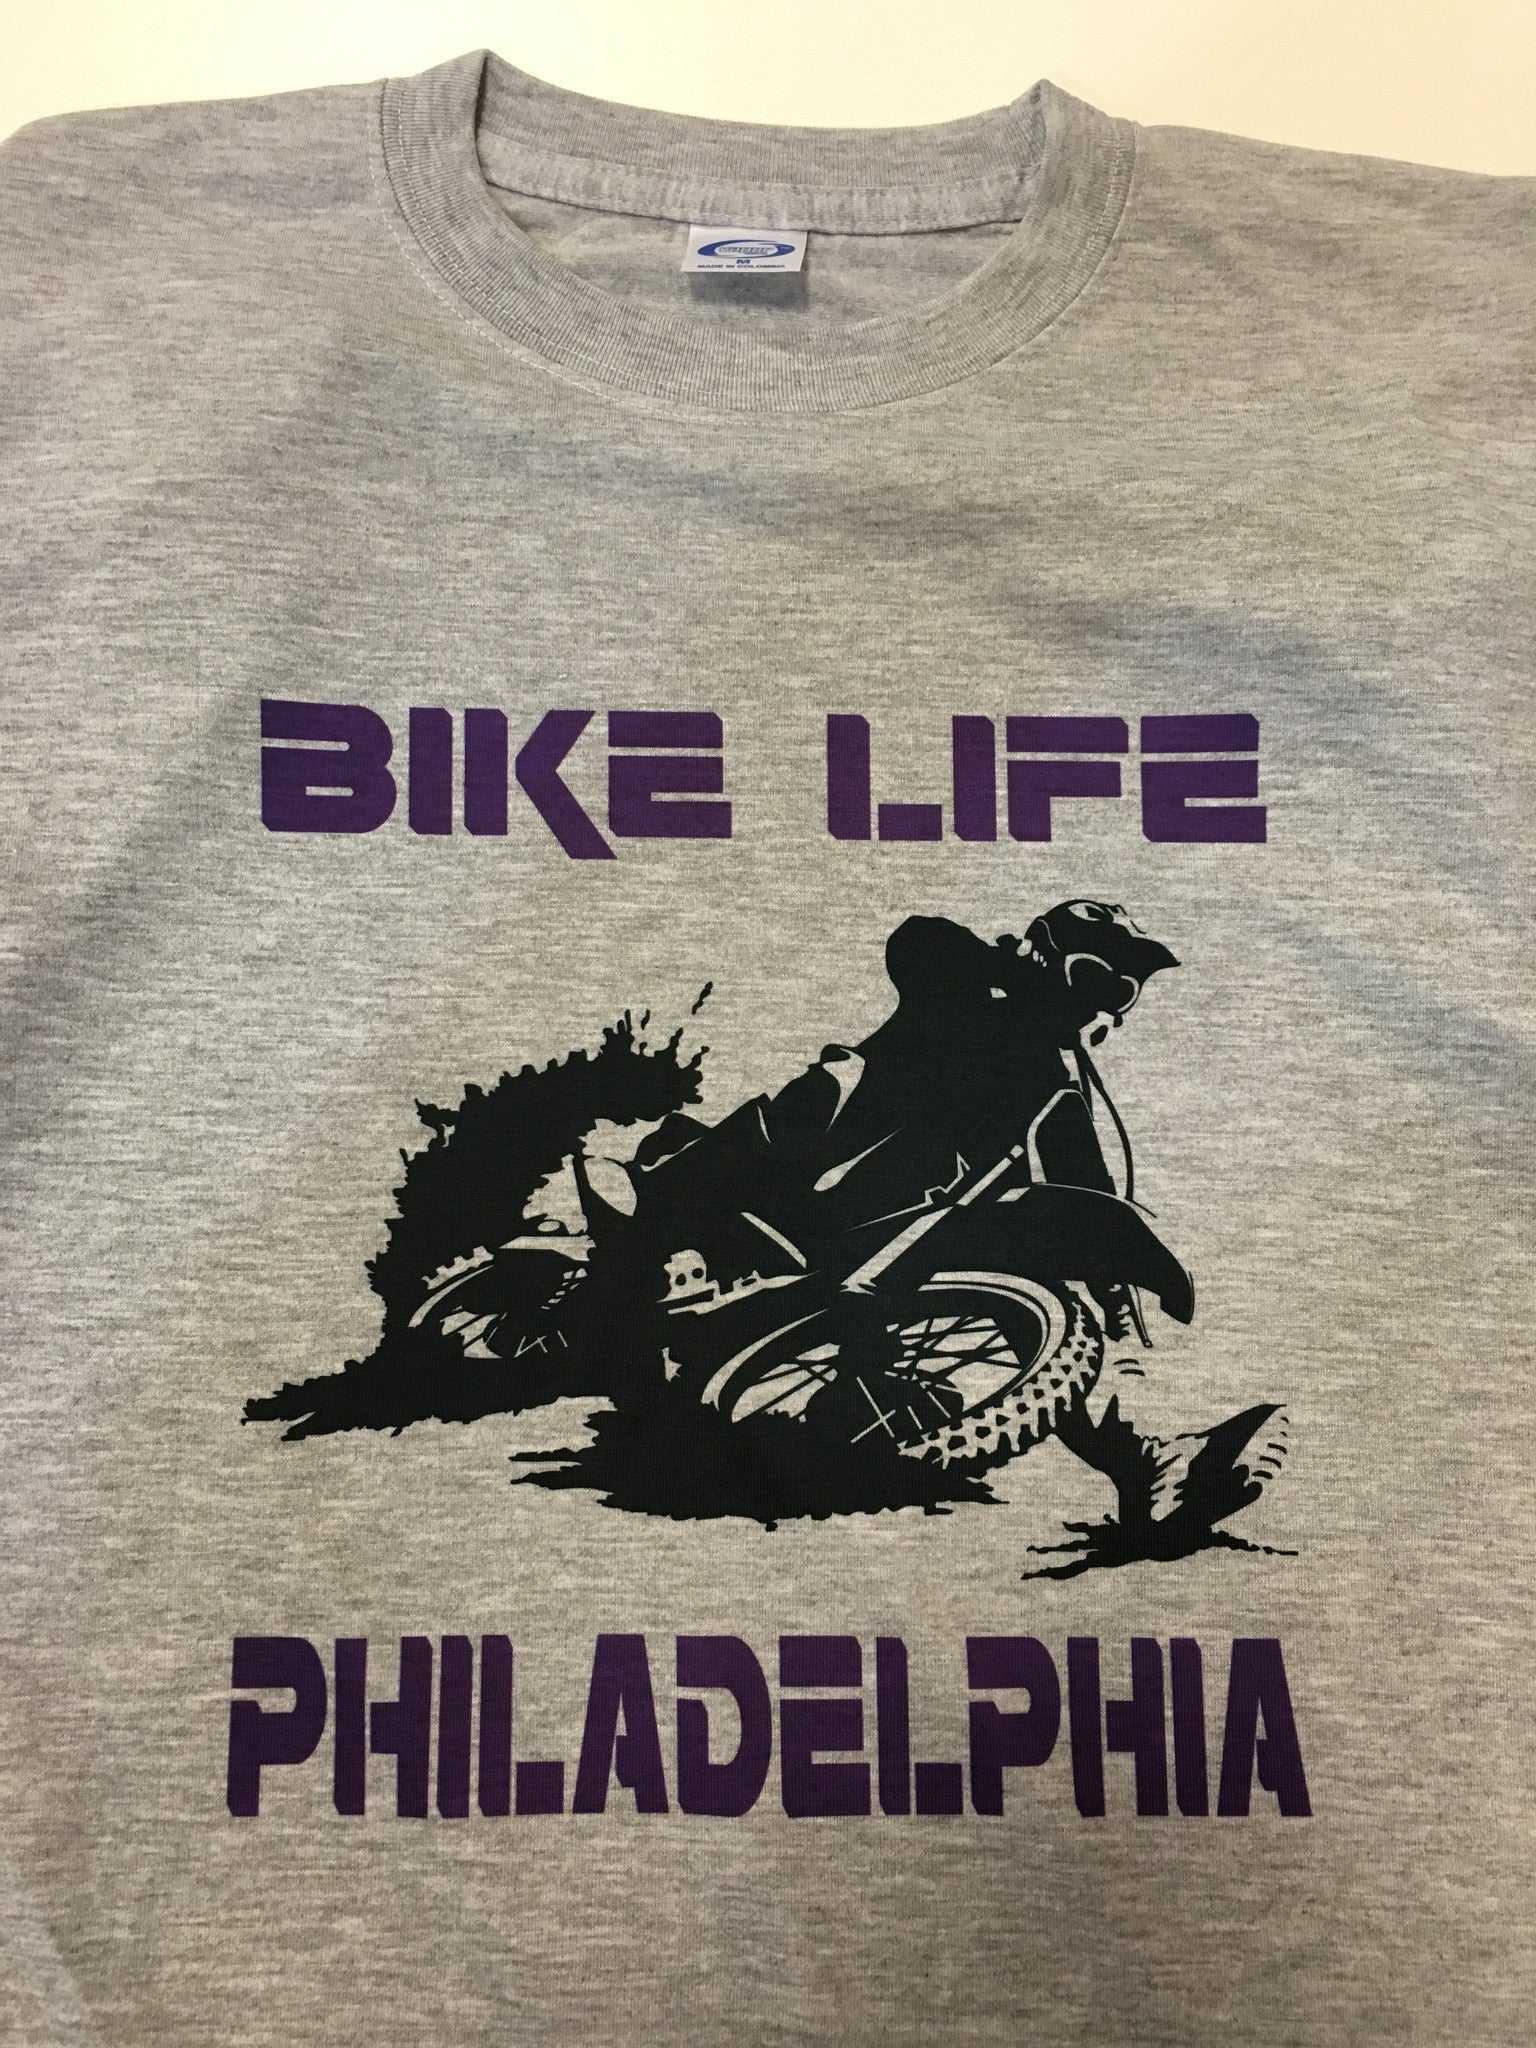 Bike Life Philadelphia T-Shirt